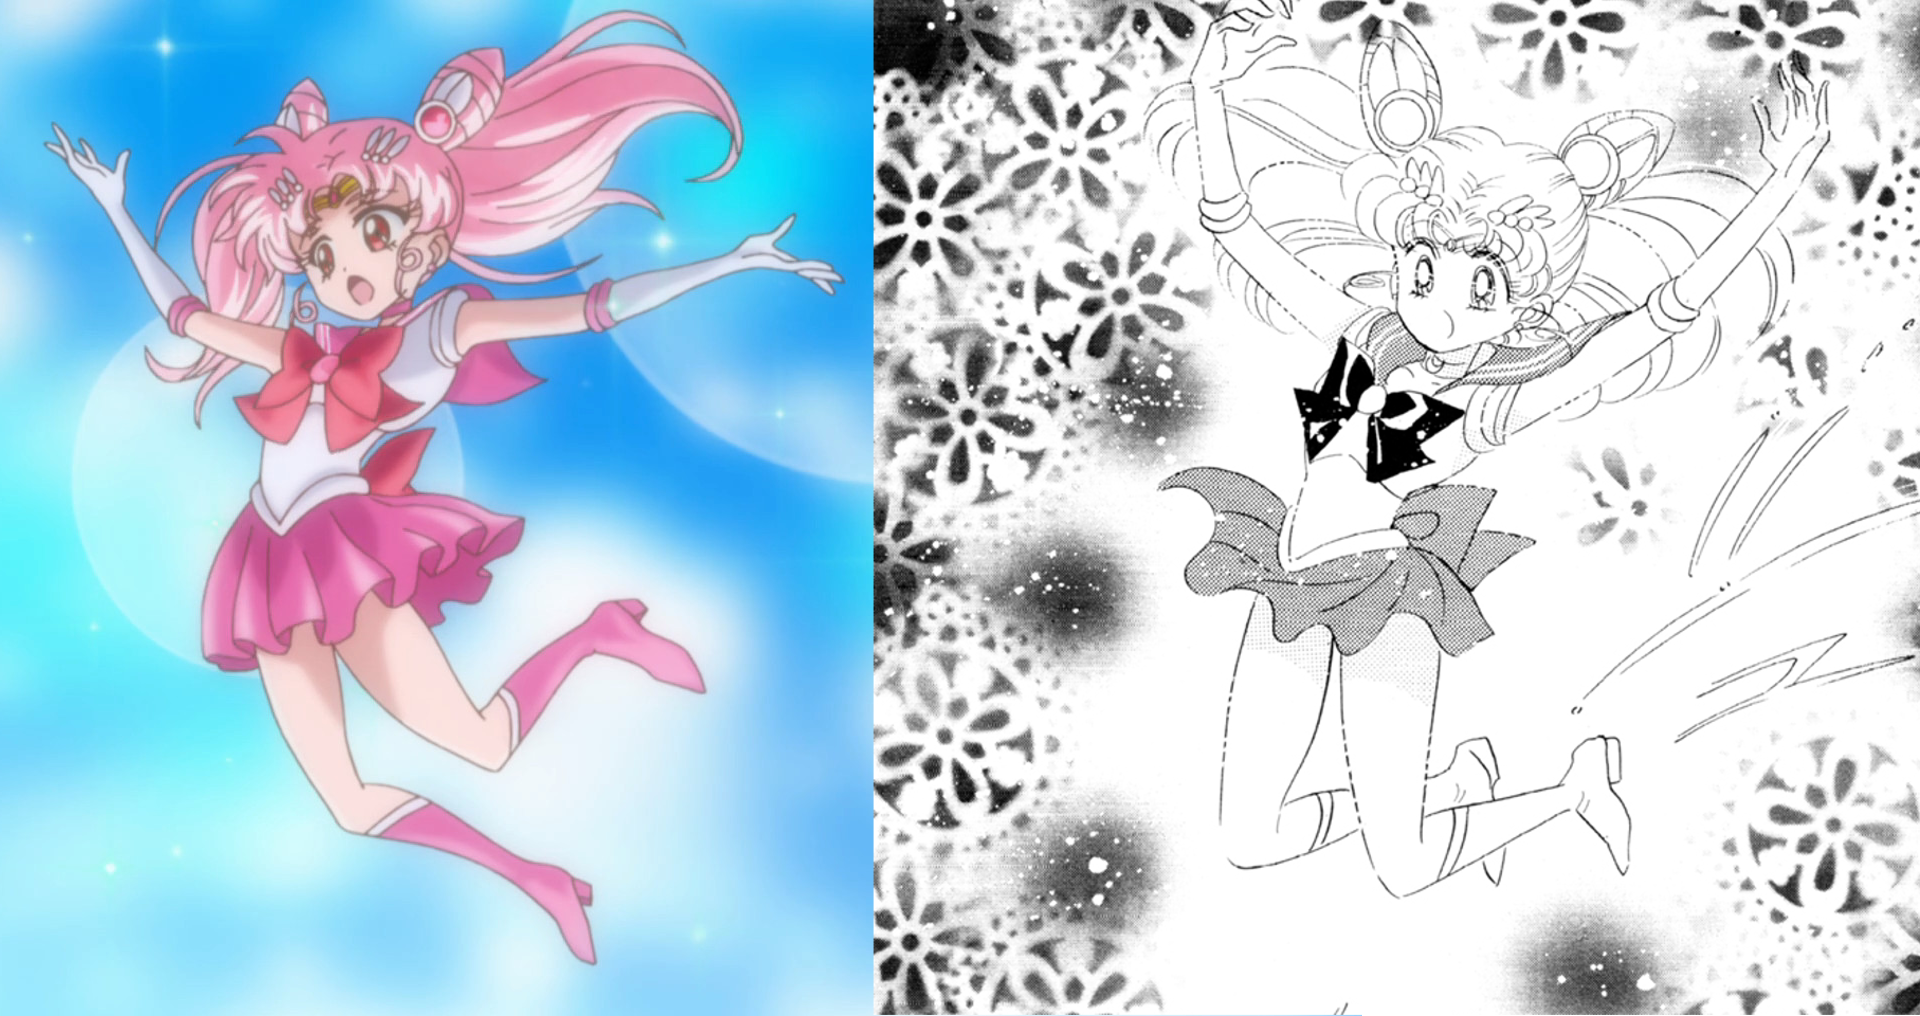 Sailor Moon Crystal Dark Moon Arc: Chibi Moon's Awakening Manga Comparison